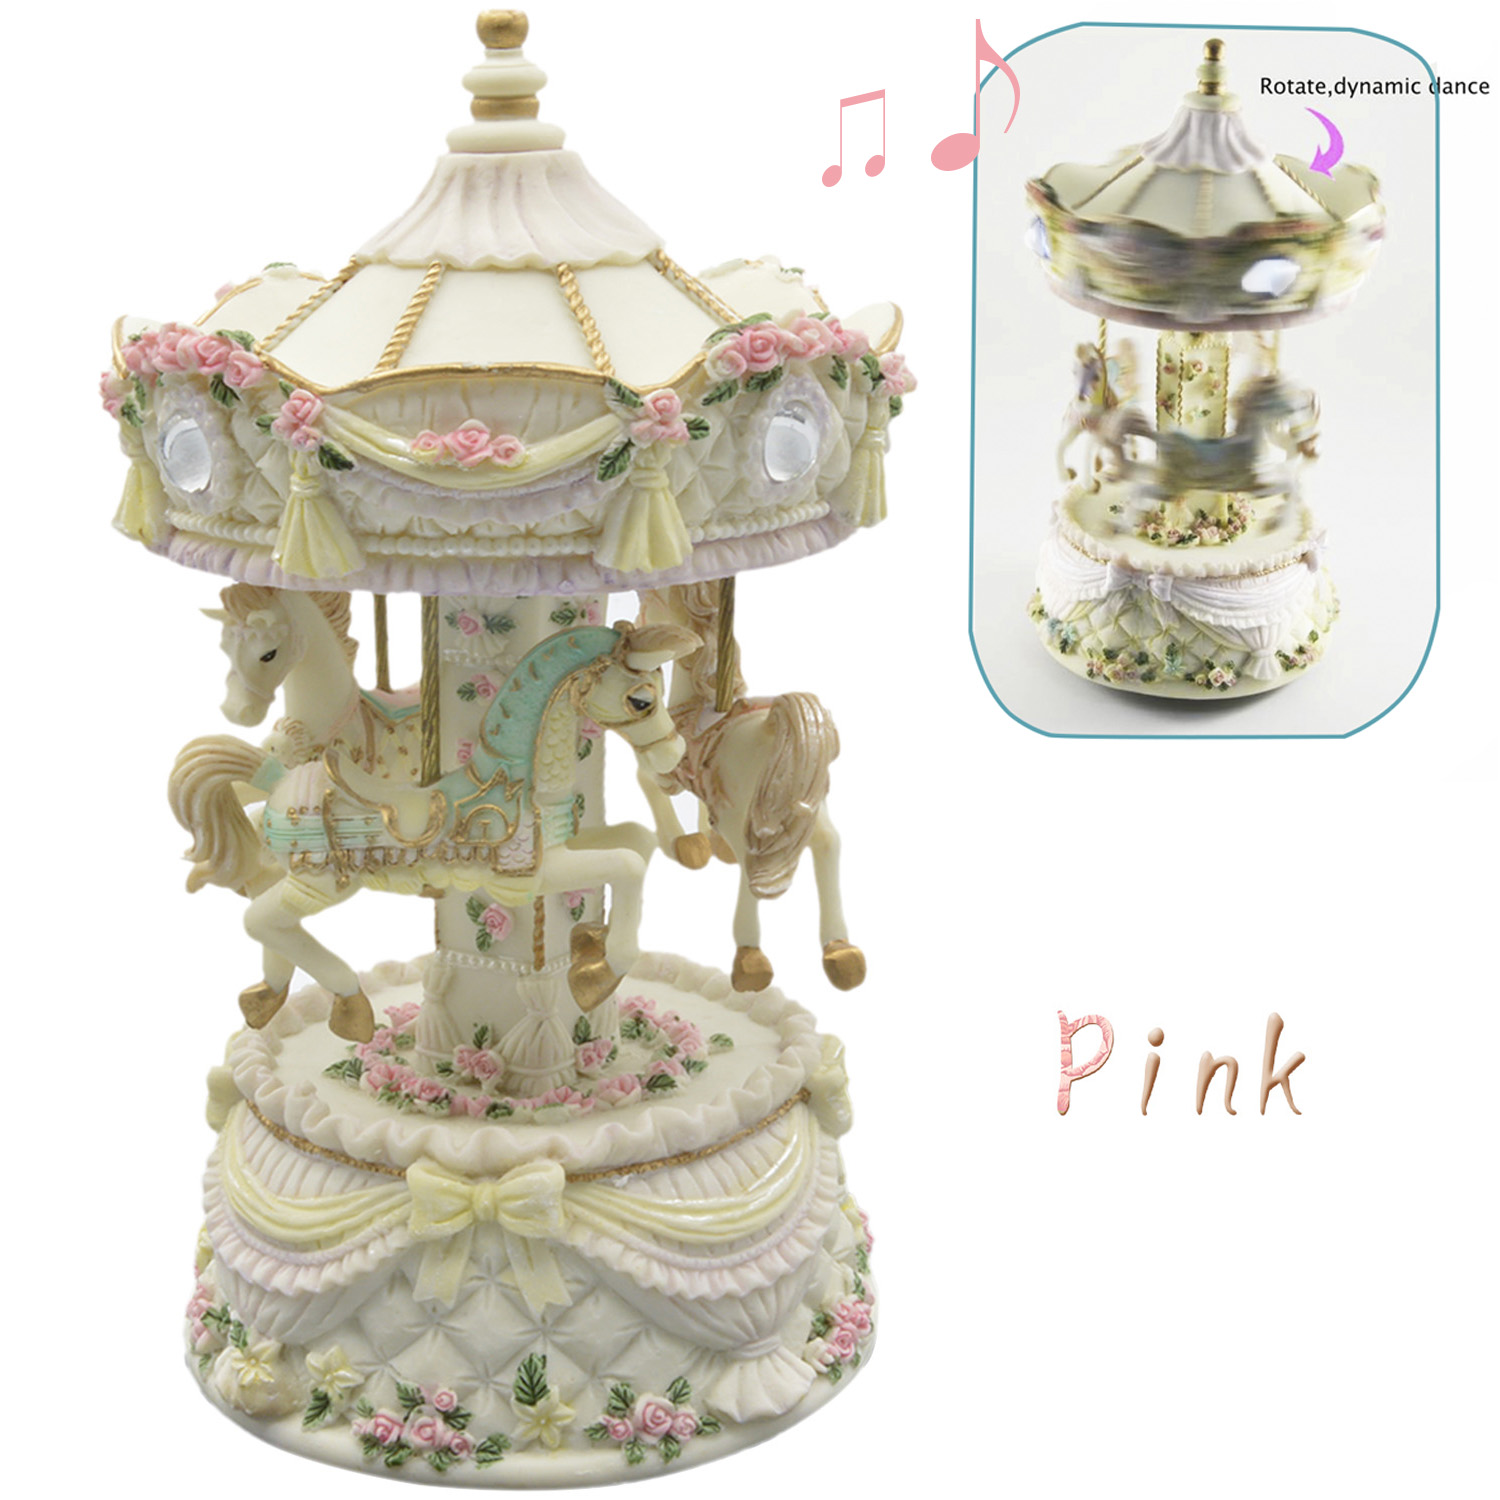 Bevigac Carousel Horses Rotating Craft Music Musical Box Decoration in the Sky Home Holiday Birthday Christmas Gifts Present